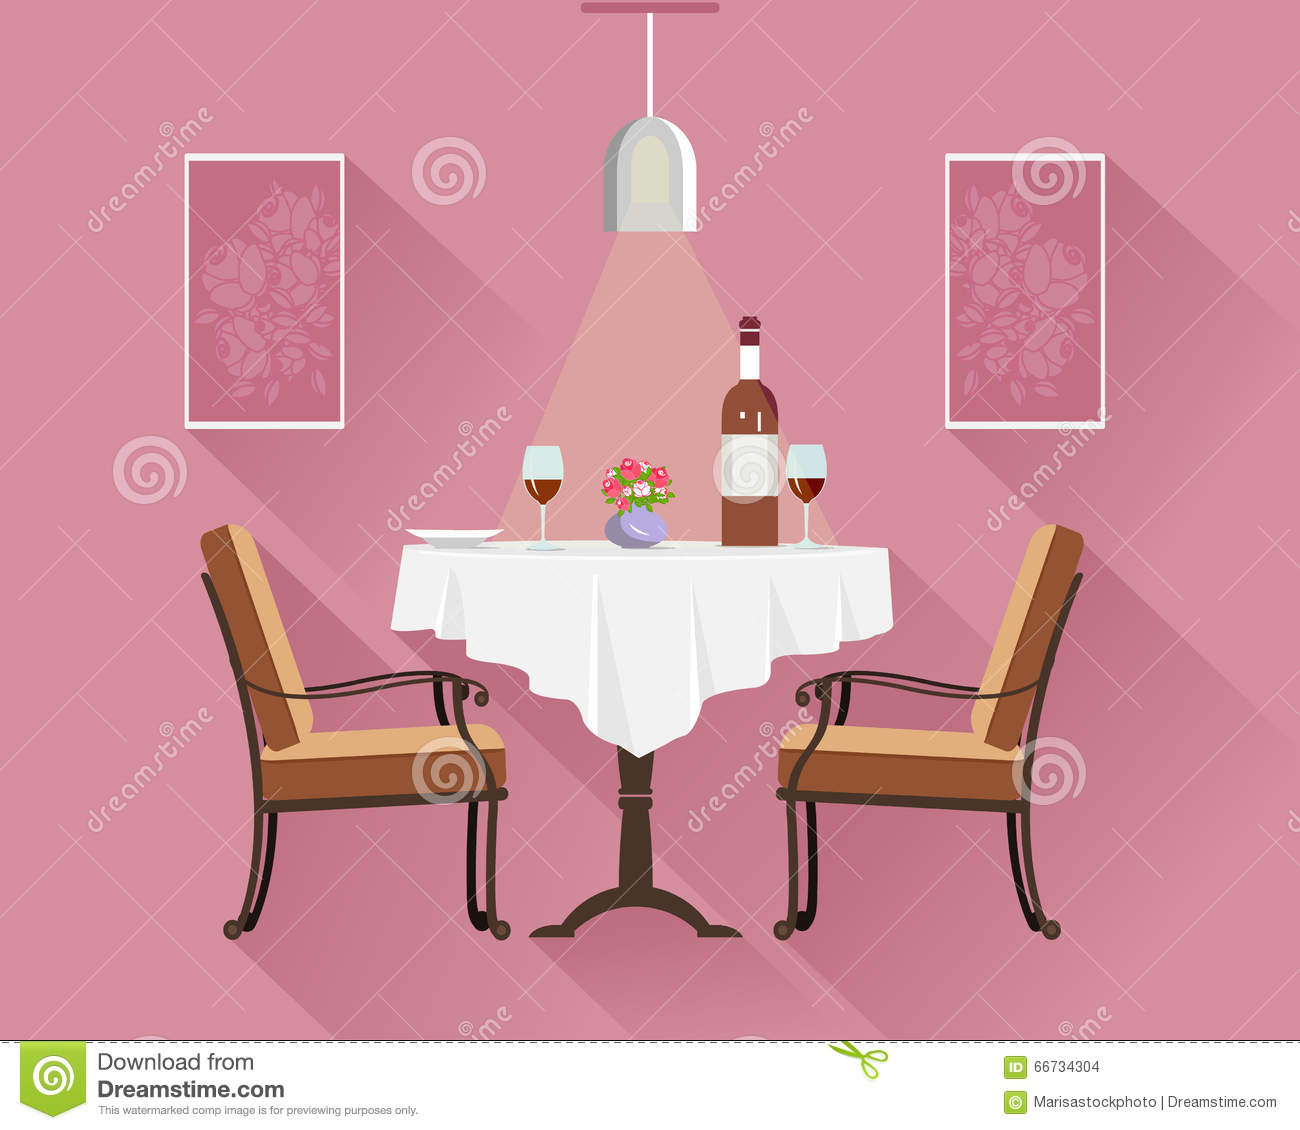 Restaurant table for two - Flat Style Round Restaurant Table For Two With White Cloth Wine Glasses Bottle Of Wine Plate And Vase Restaurant Table